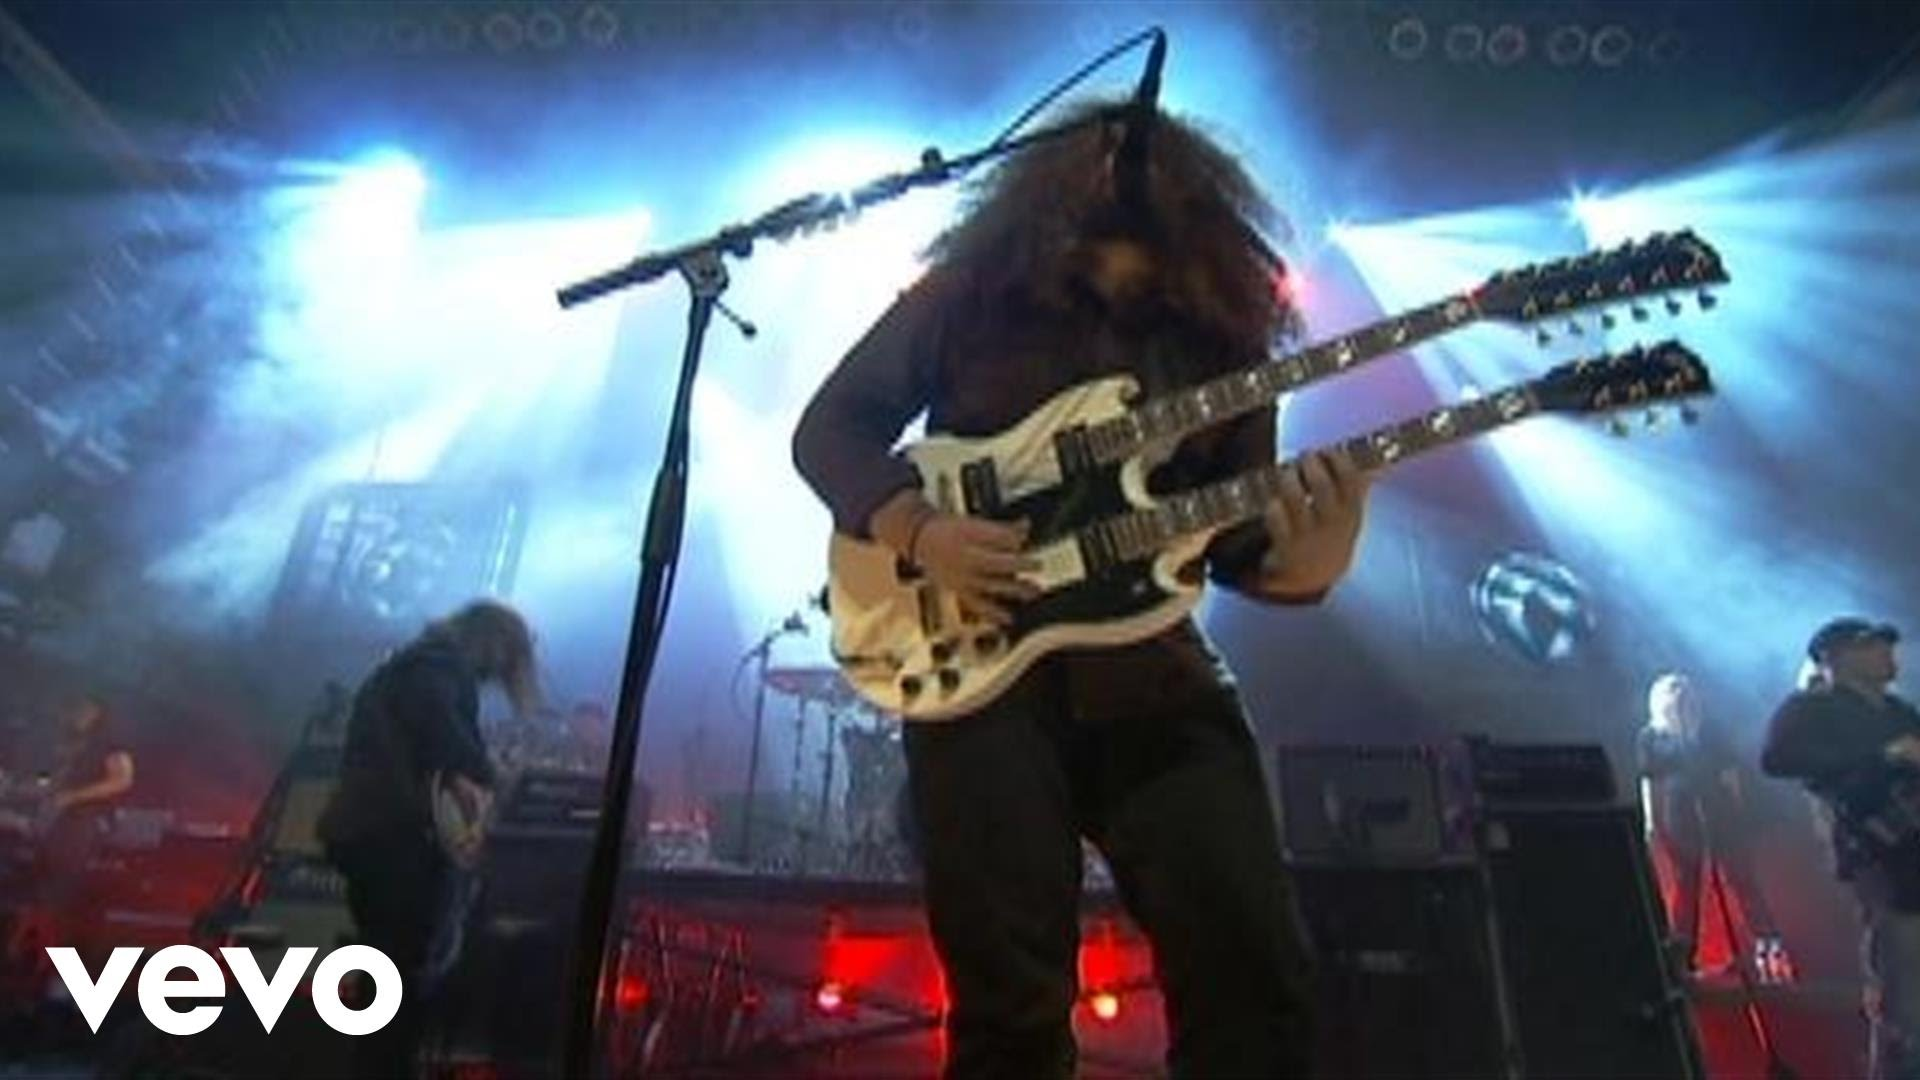 Coheed and Cambria and Taking Back Sunday announce 2018 co-headlining summer tour